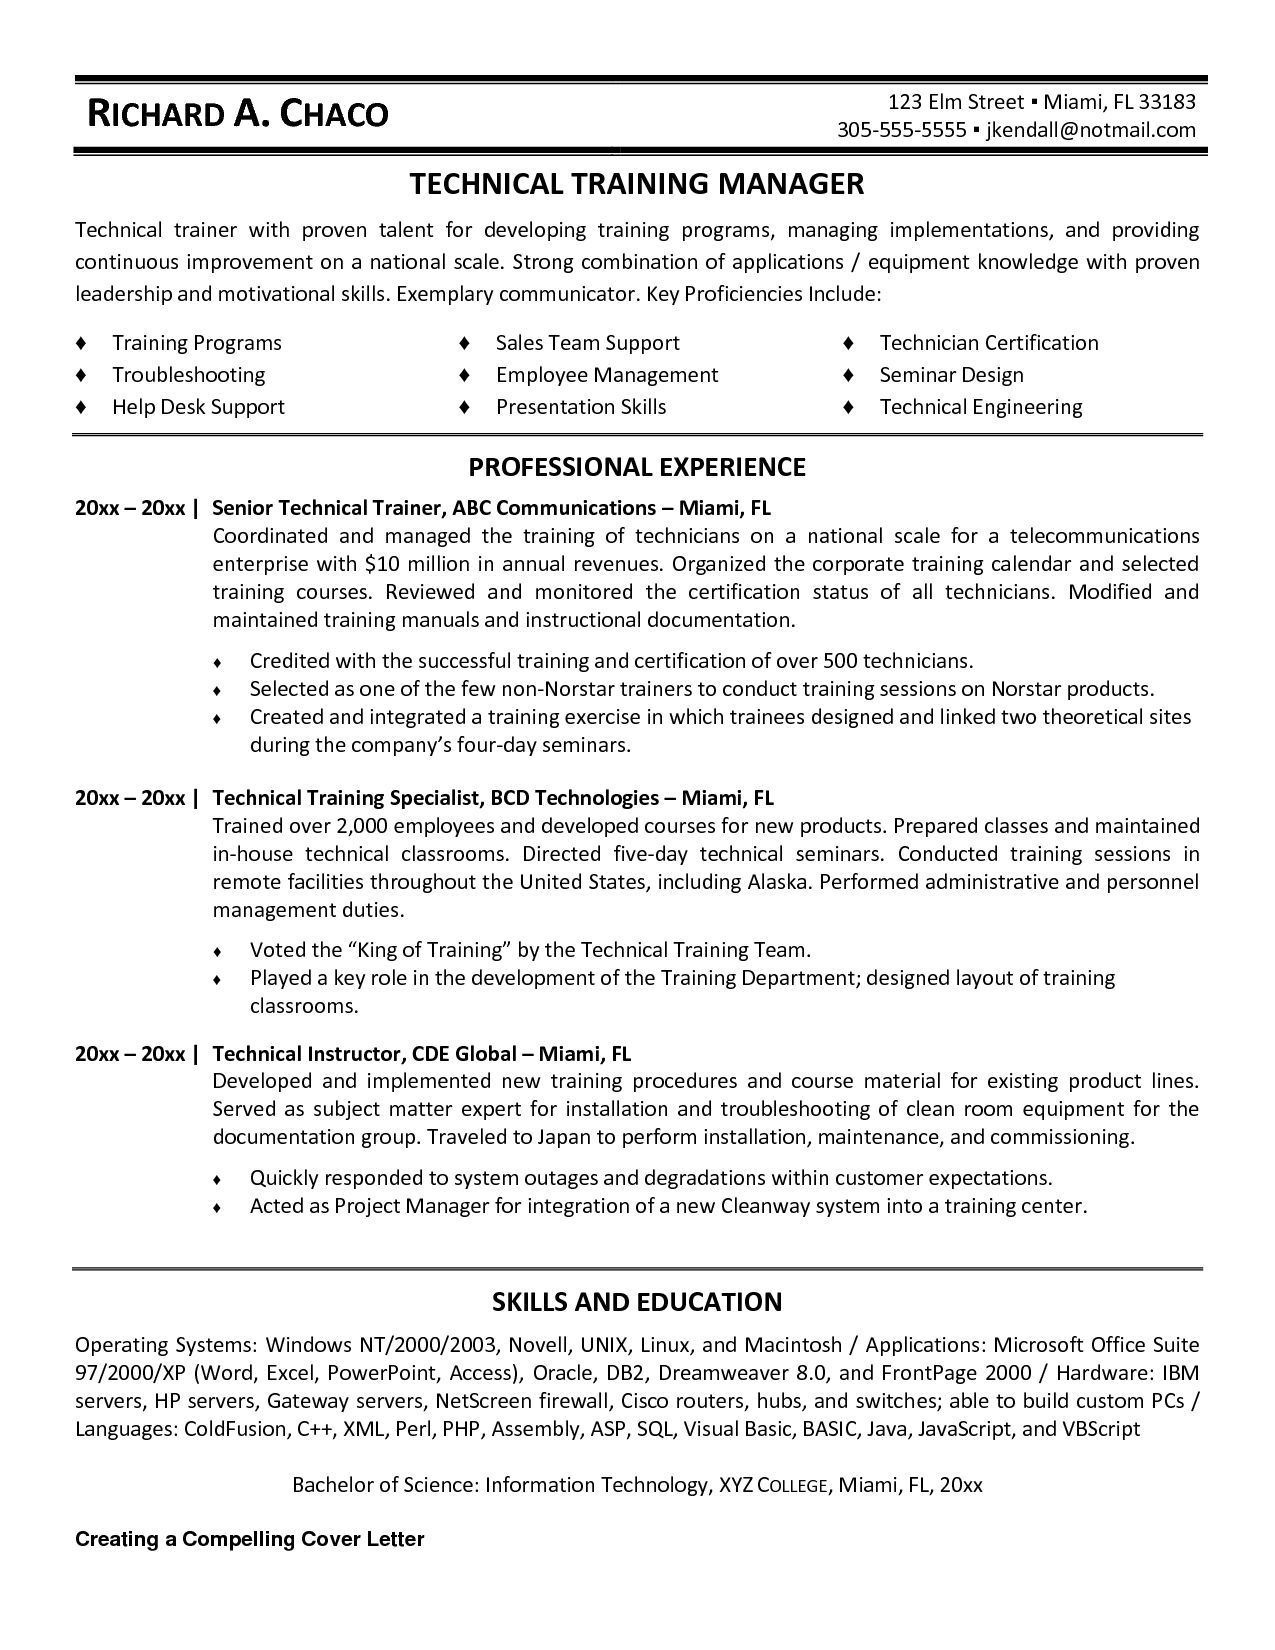 Superb Personal Trainer Resume Objective Personal Trainer Resume Sample Gallery  Photos